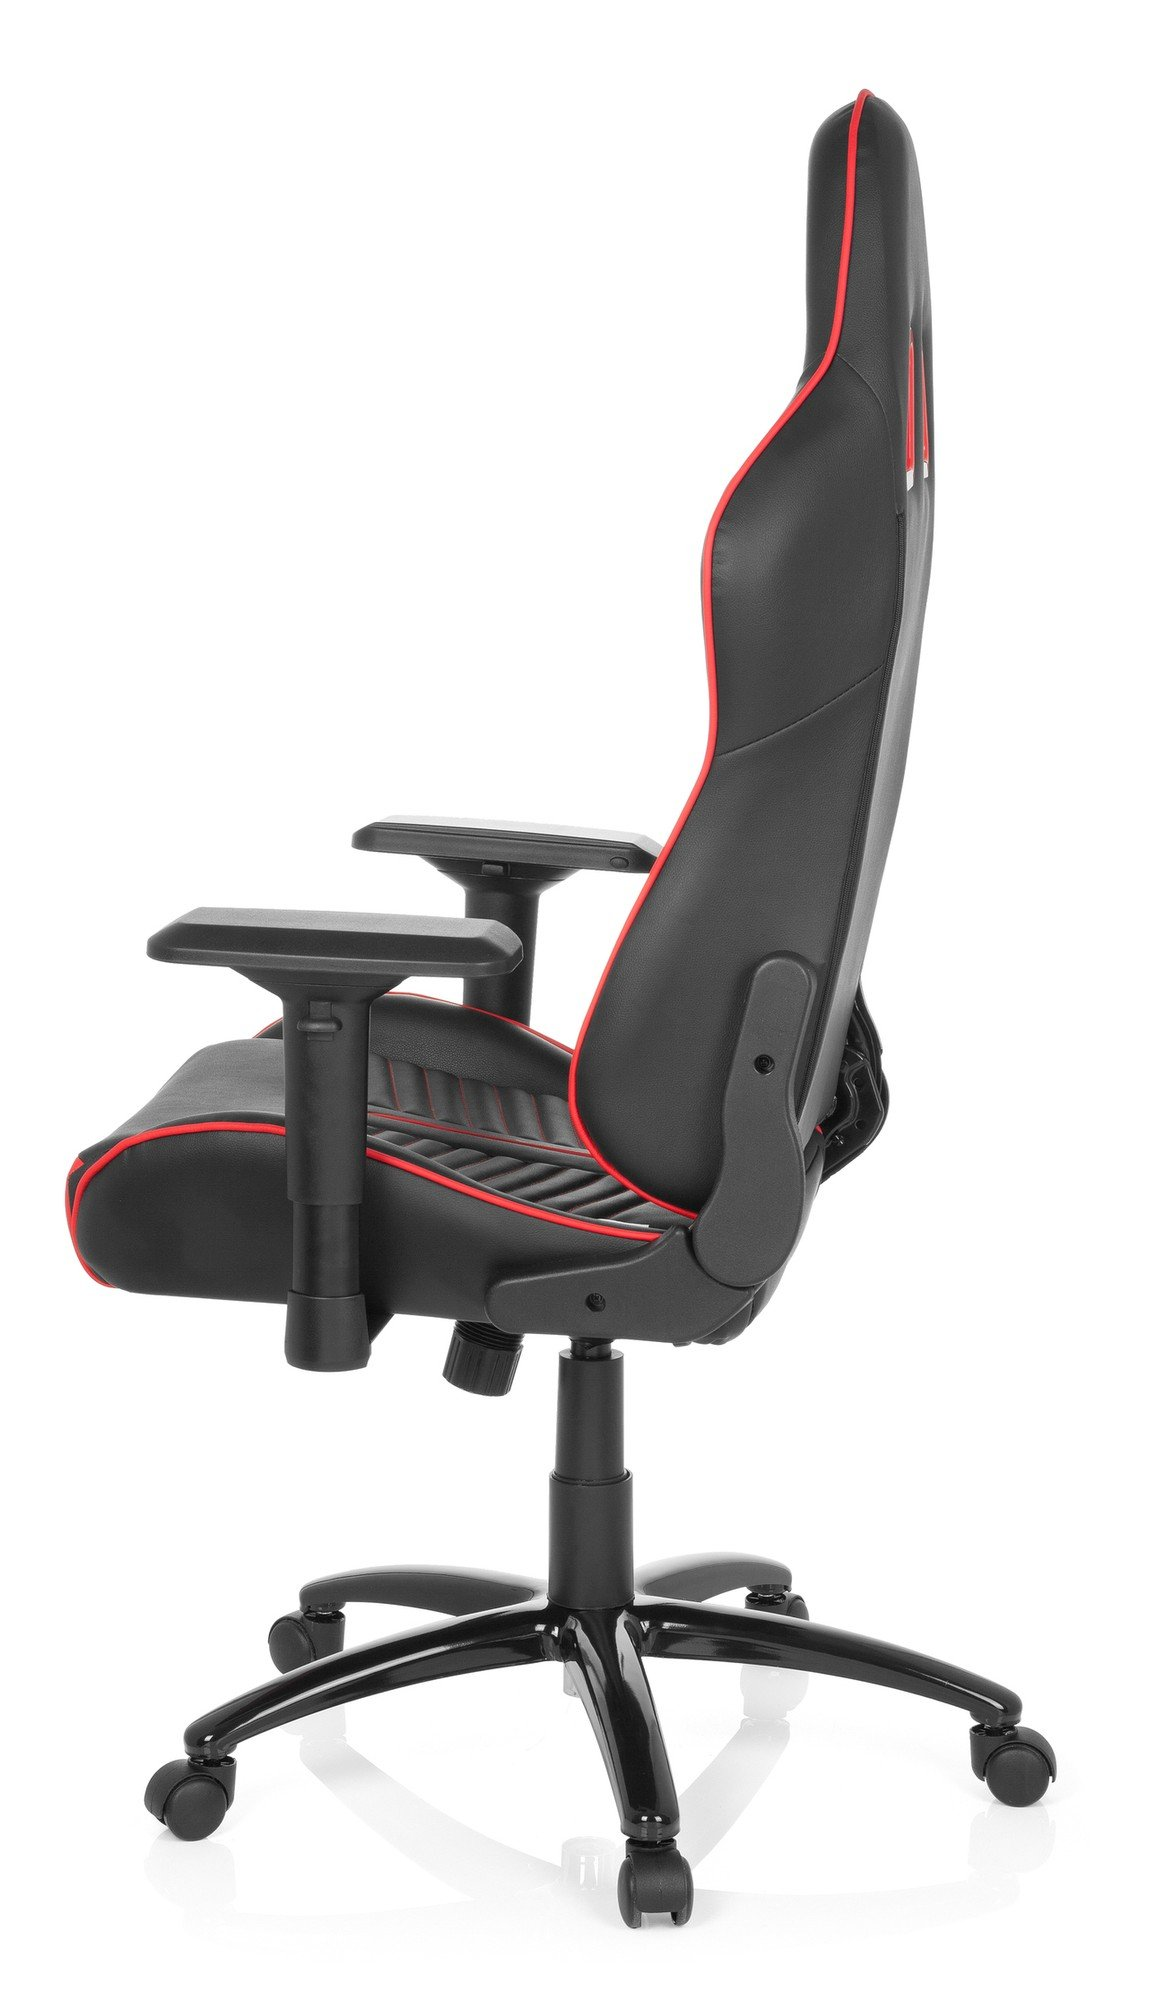 hjh OFFICE 729240 Silla Gaming League Pro Piel sintética Negro/Rojo Silla escritorioe Metal Estable, Silla de Oficina, Silla Racing